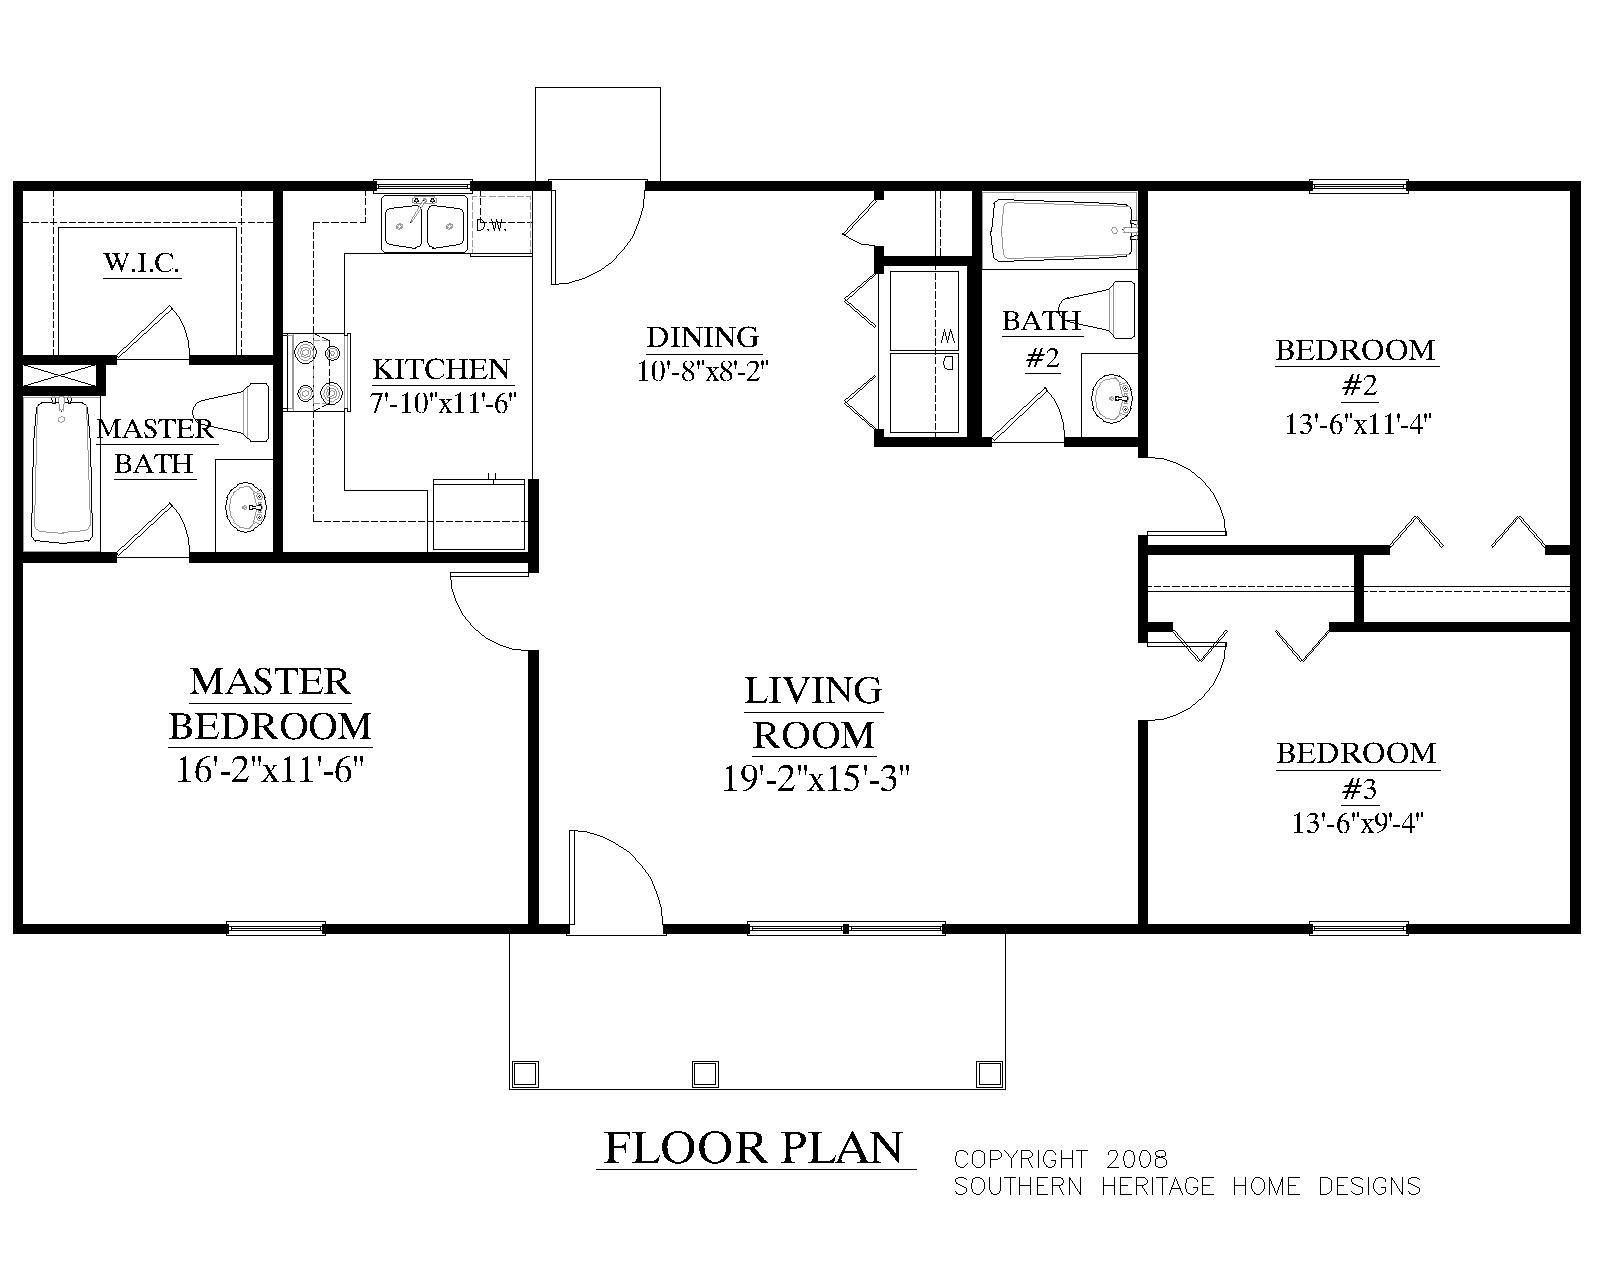 House Plan 1200A The KOREY A Floor Plan 20x40 house